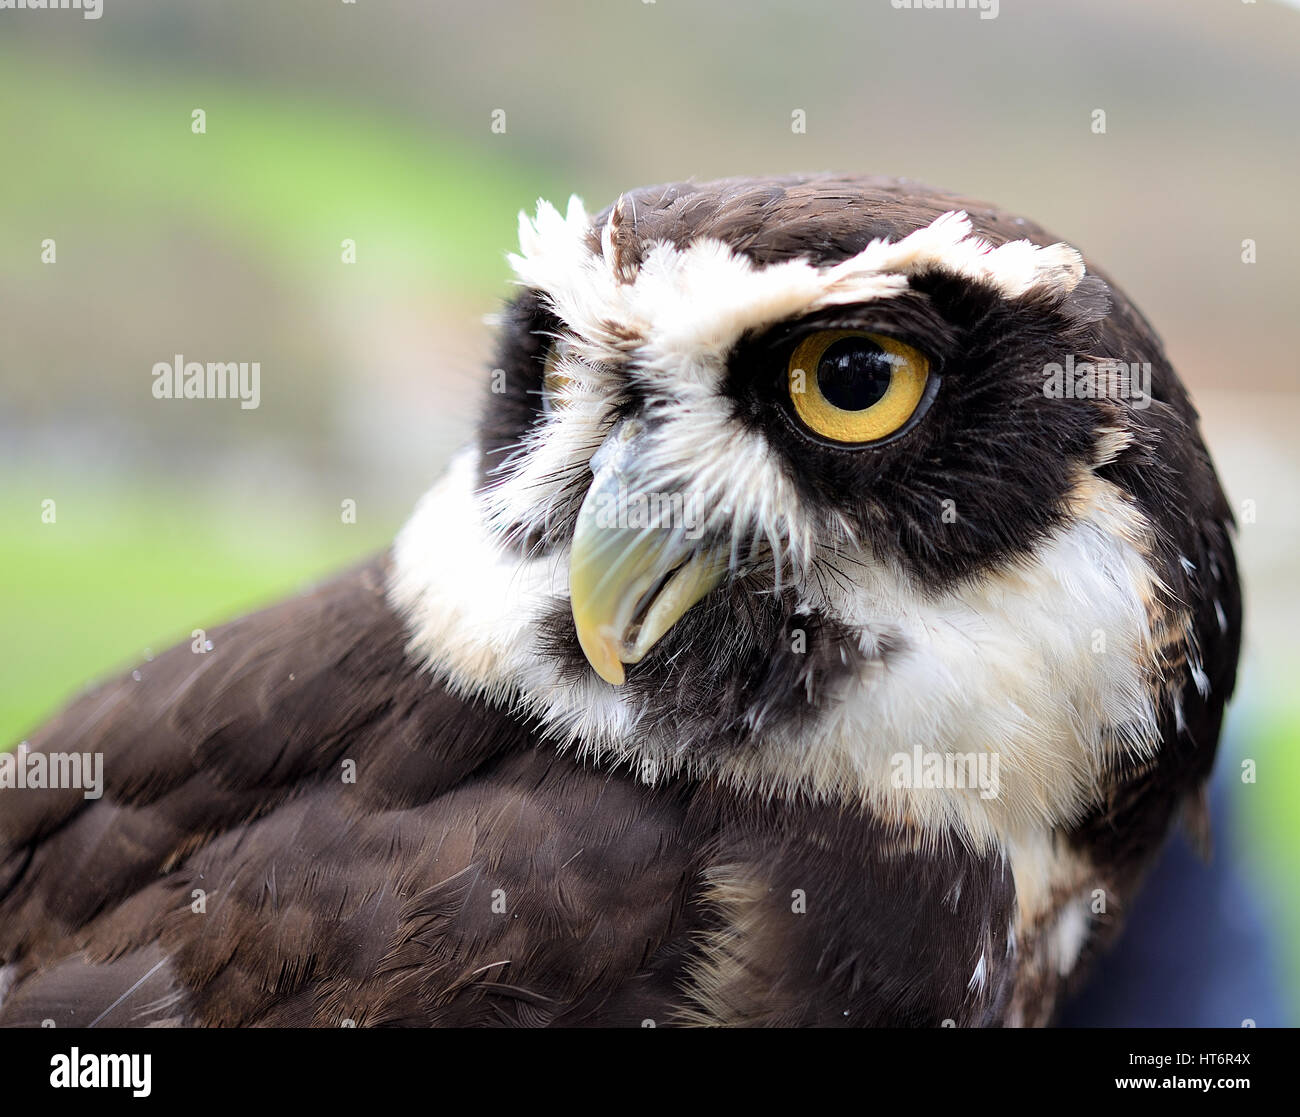 Spectacle owl portrait - Stock Image